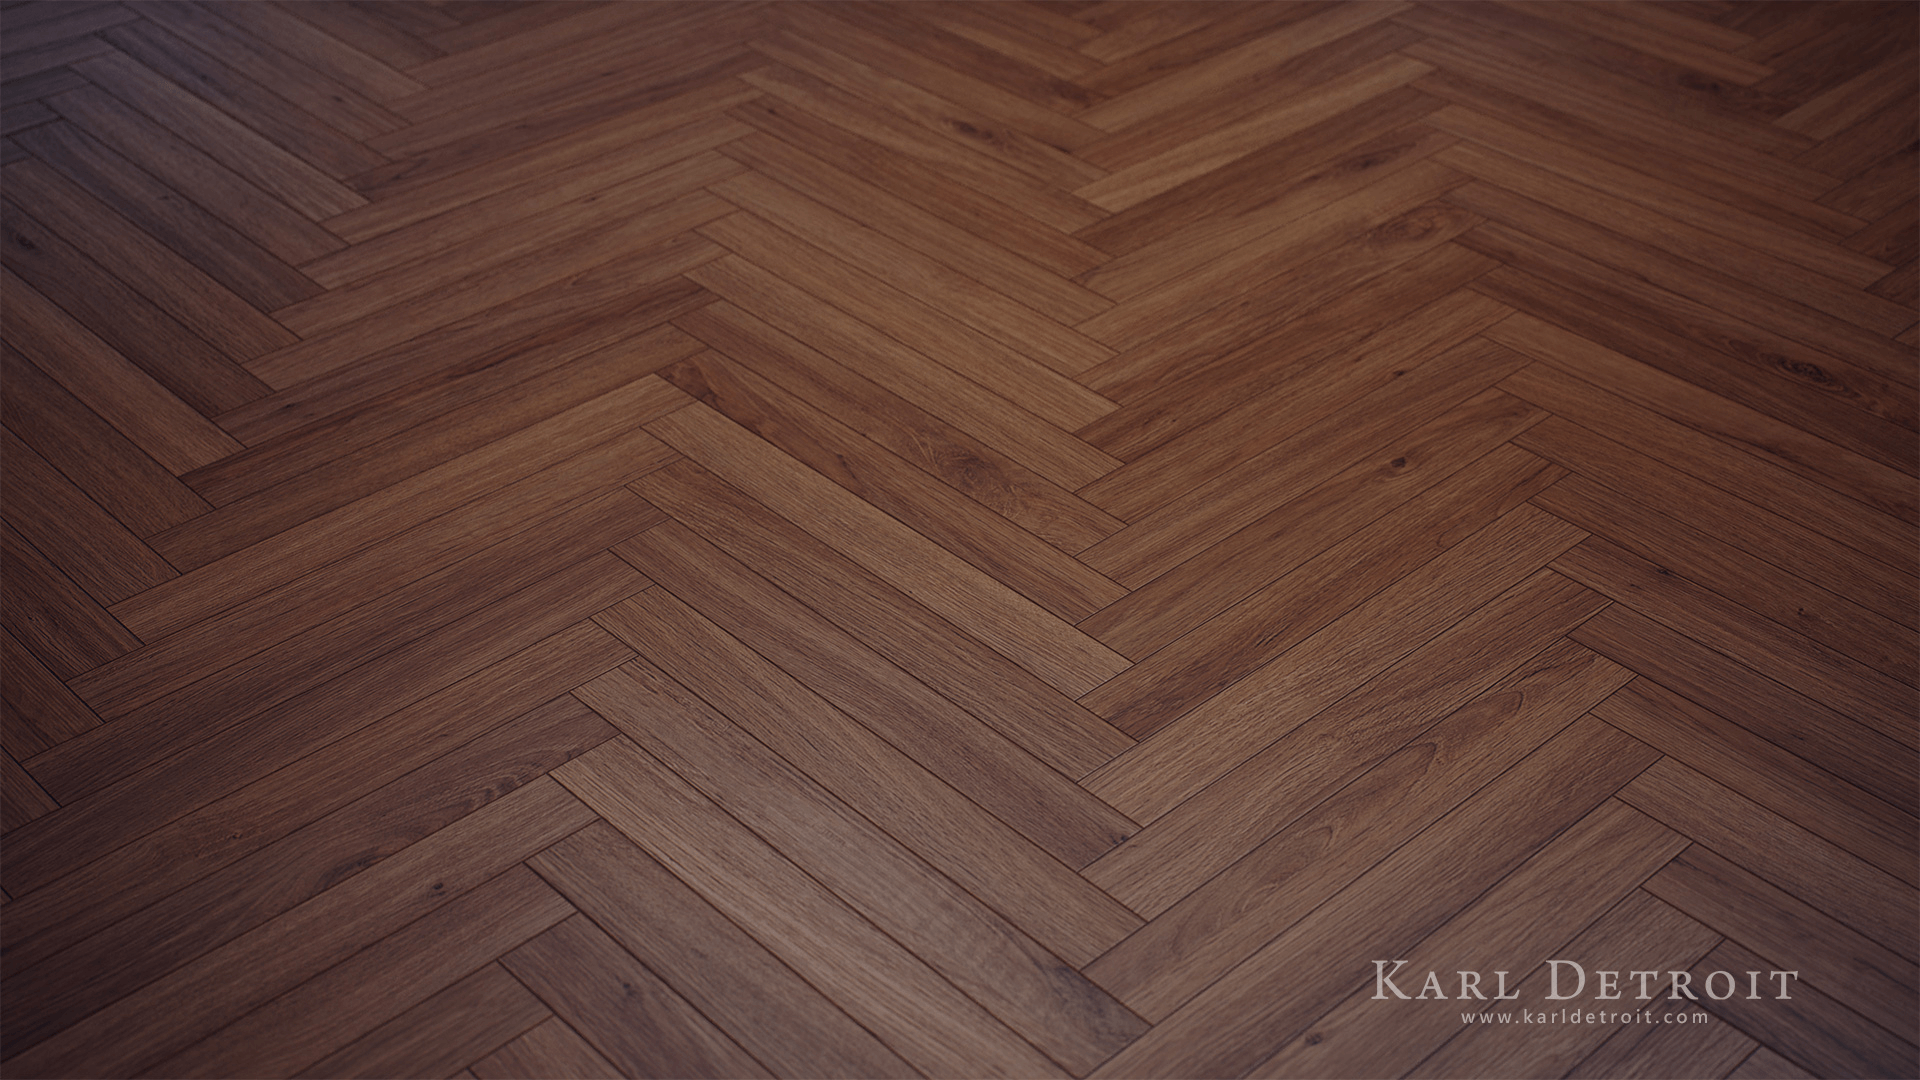 4K Materials Wood Flooring by Karl Detroit in Materials - UE4 Marketplace